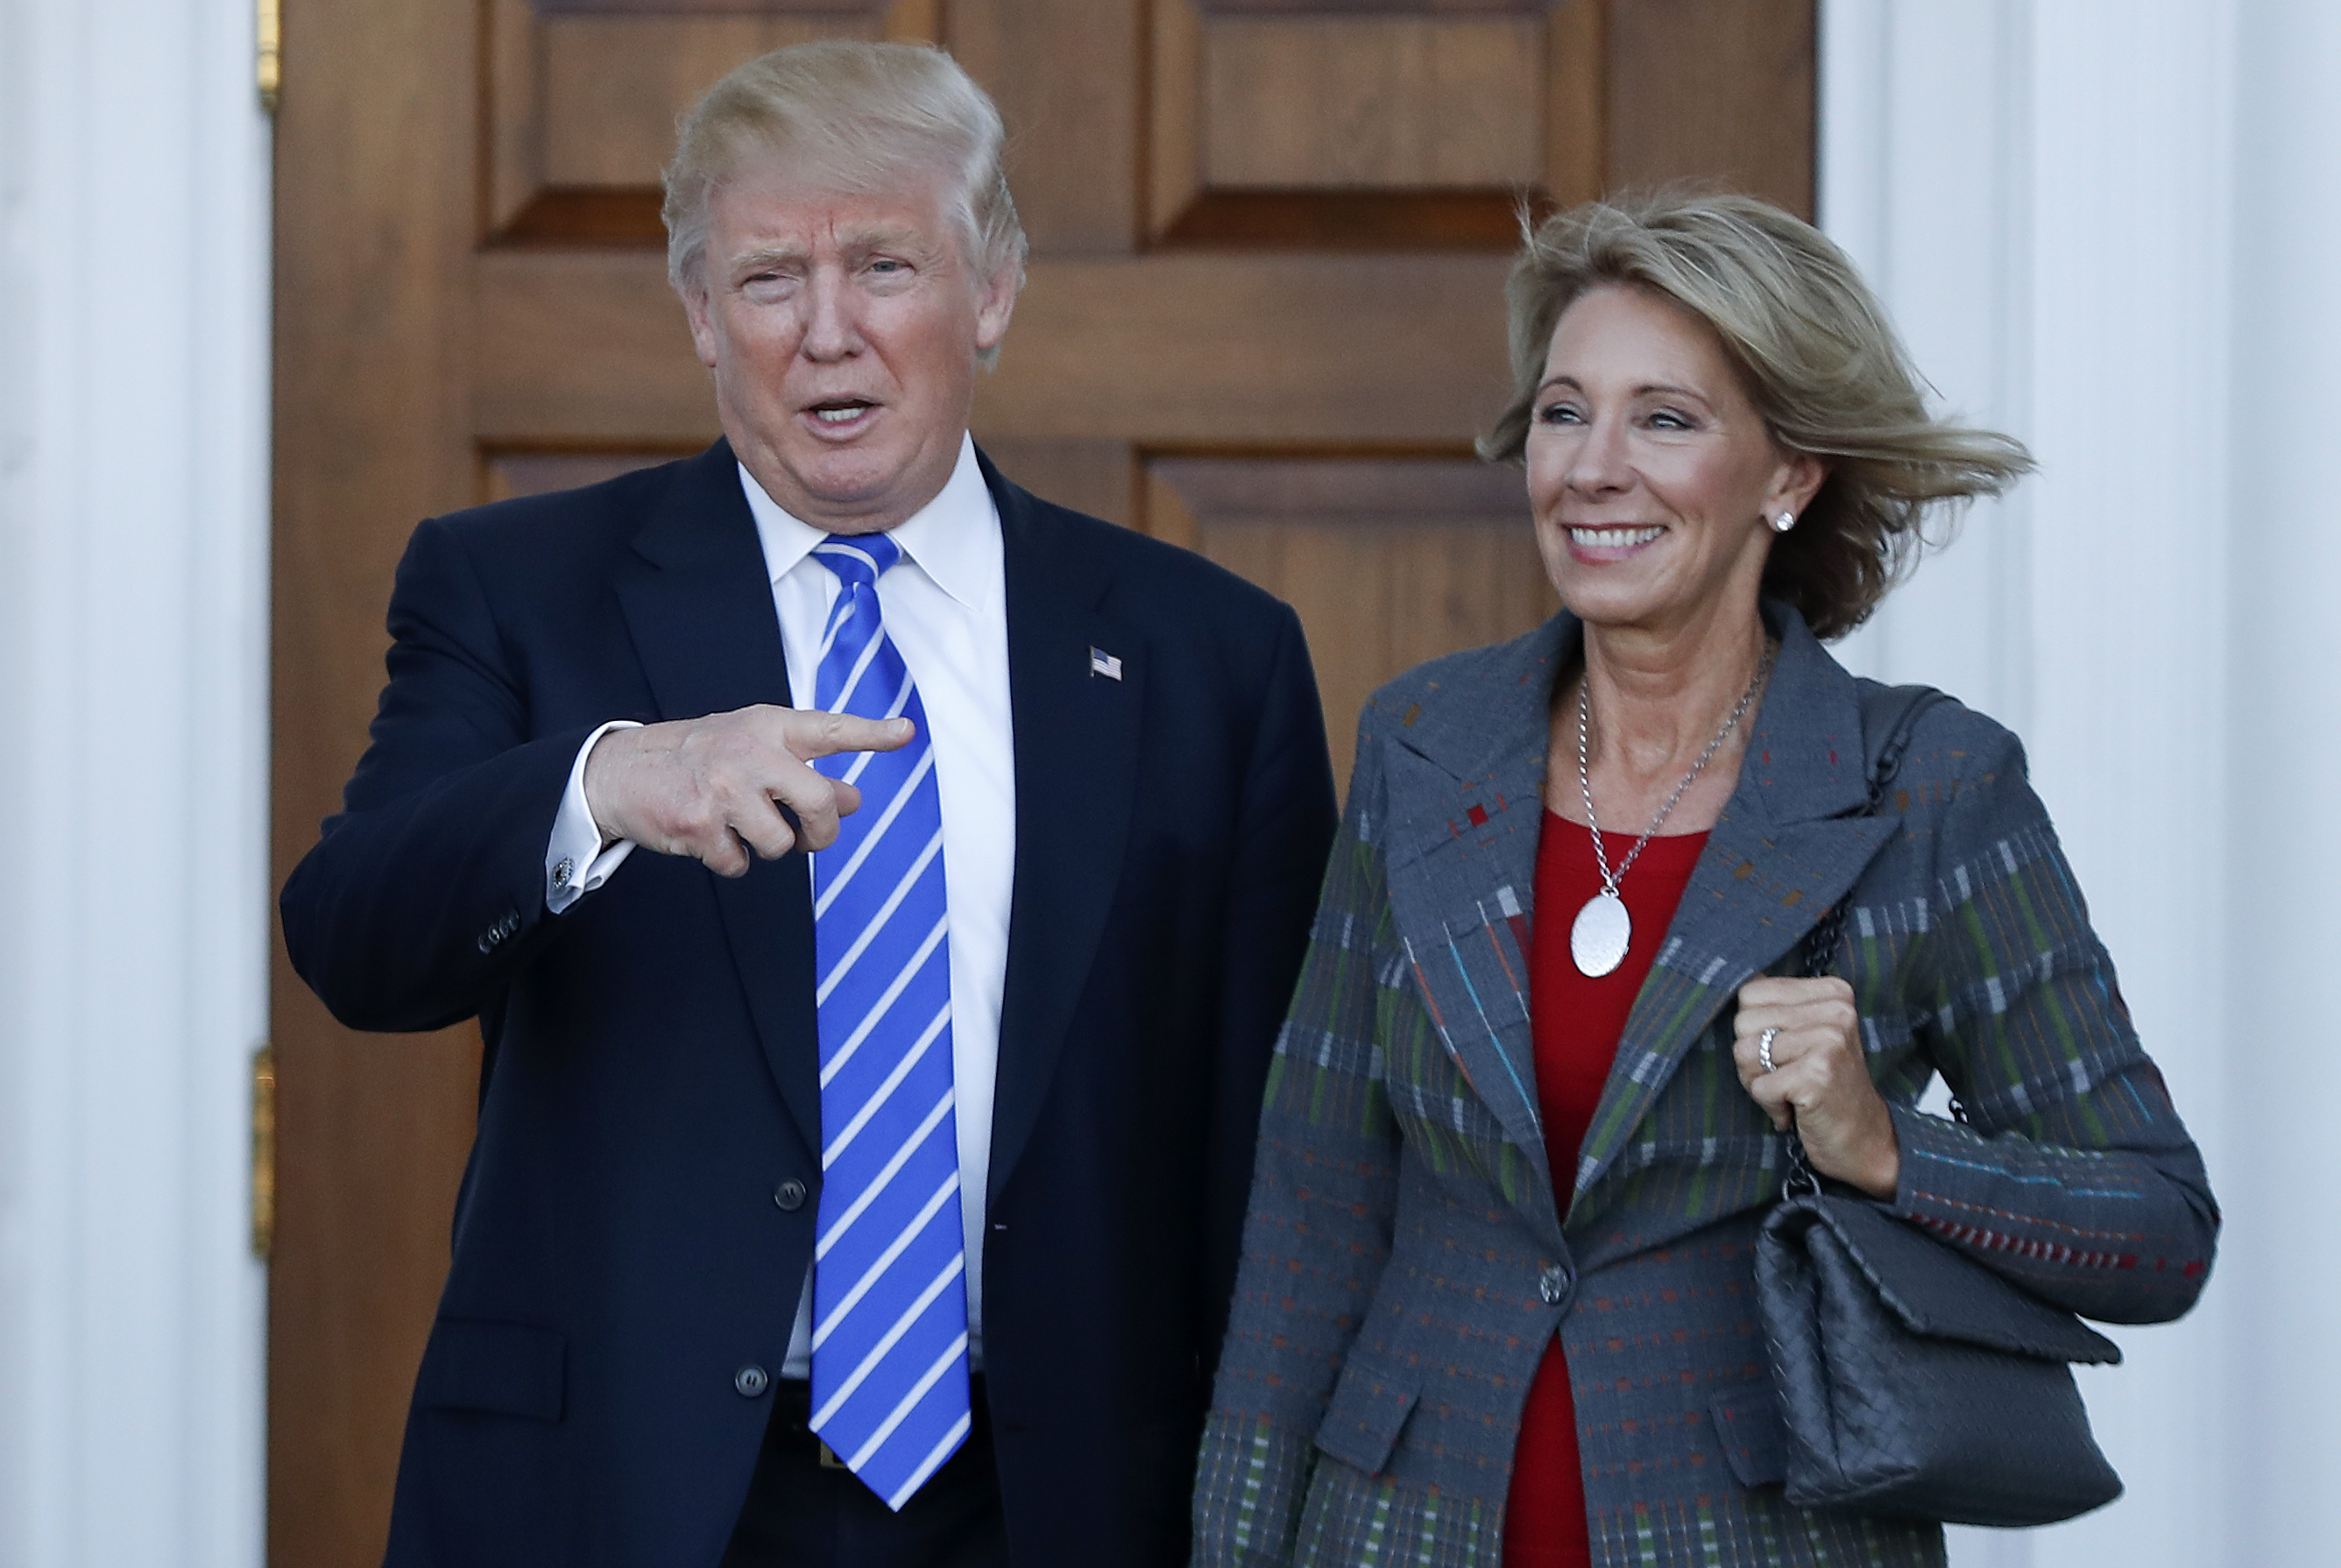 Betsy Devos Trumps Education Pick Plays >> Here S Donald Trump S Choice For Secretary Of Education Fortune